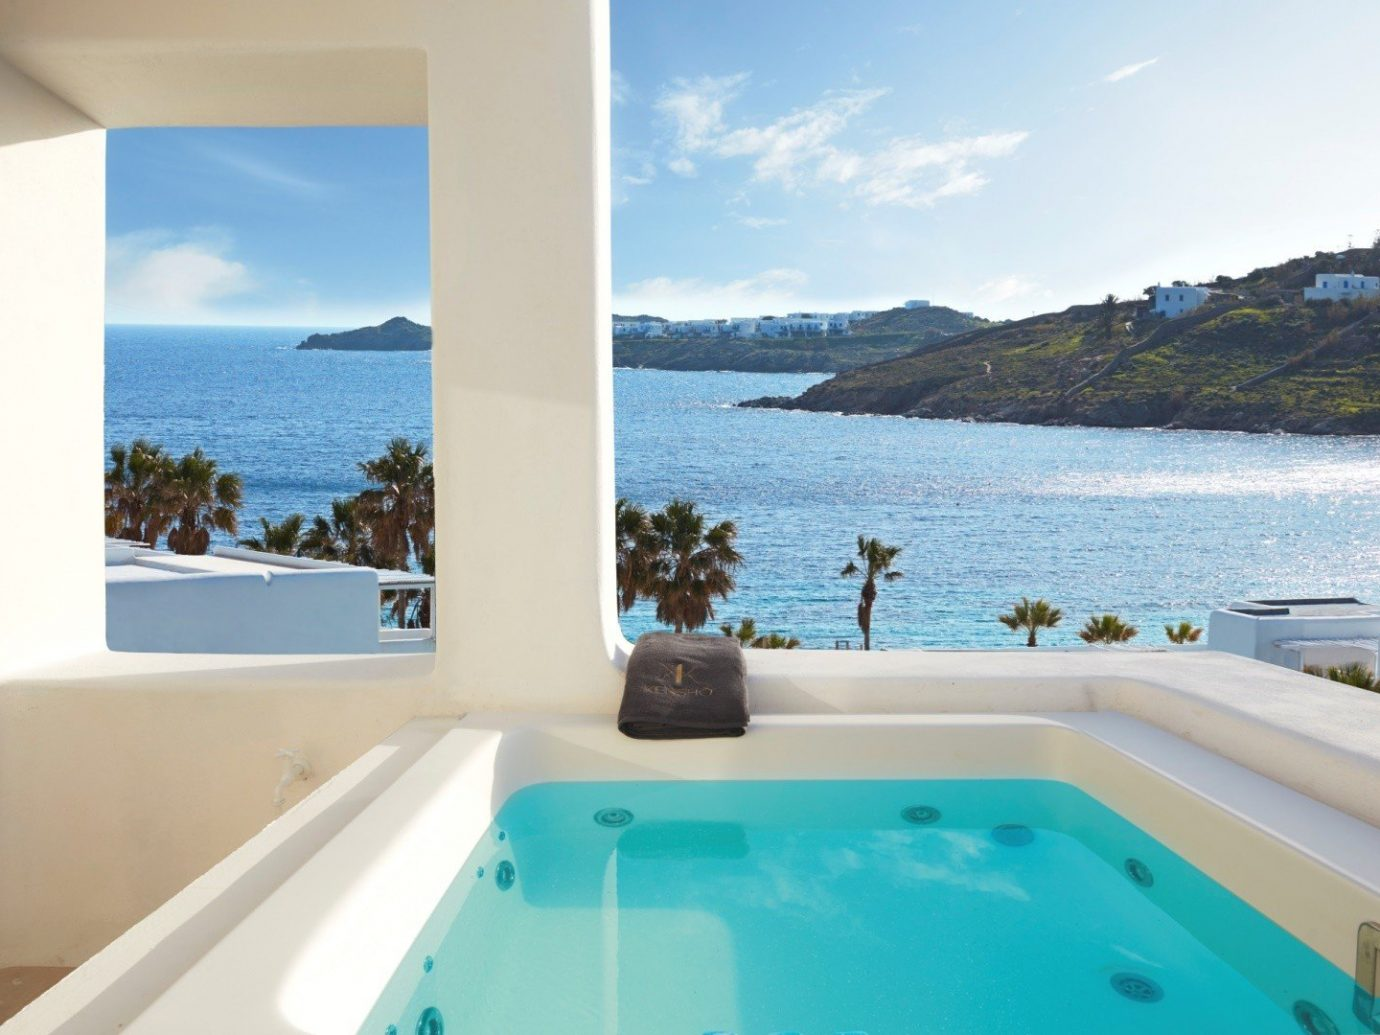 Hotels water sky swimming pool property window vacation leisure caribbean overlooking Ocean Villa estate Resort bathtub real estate Island day